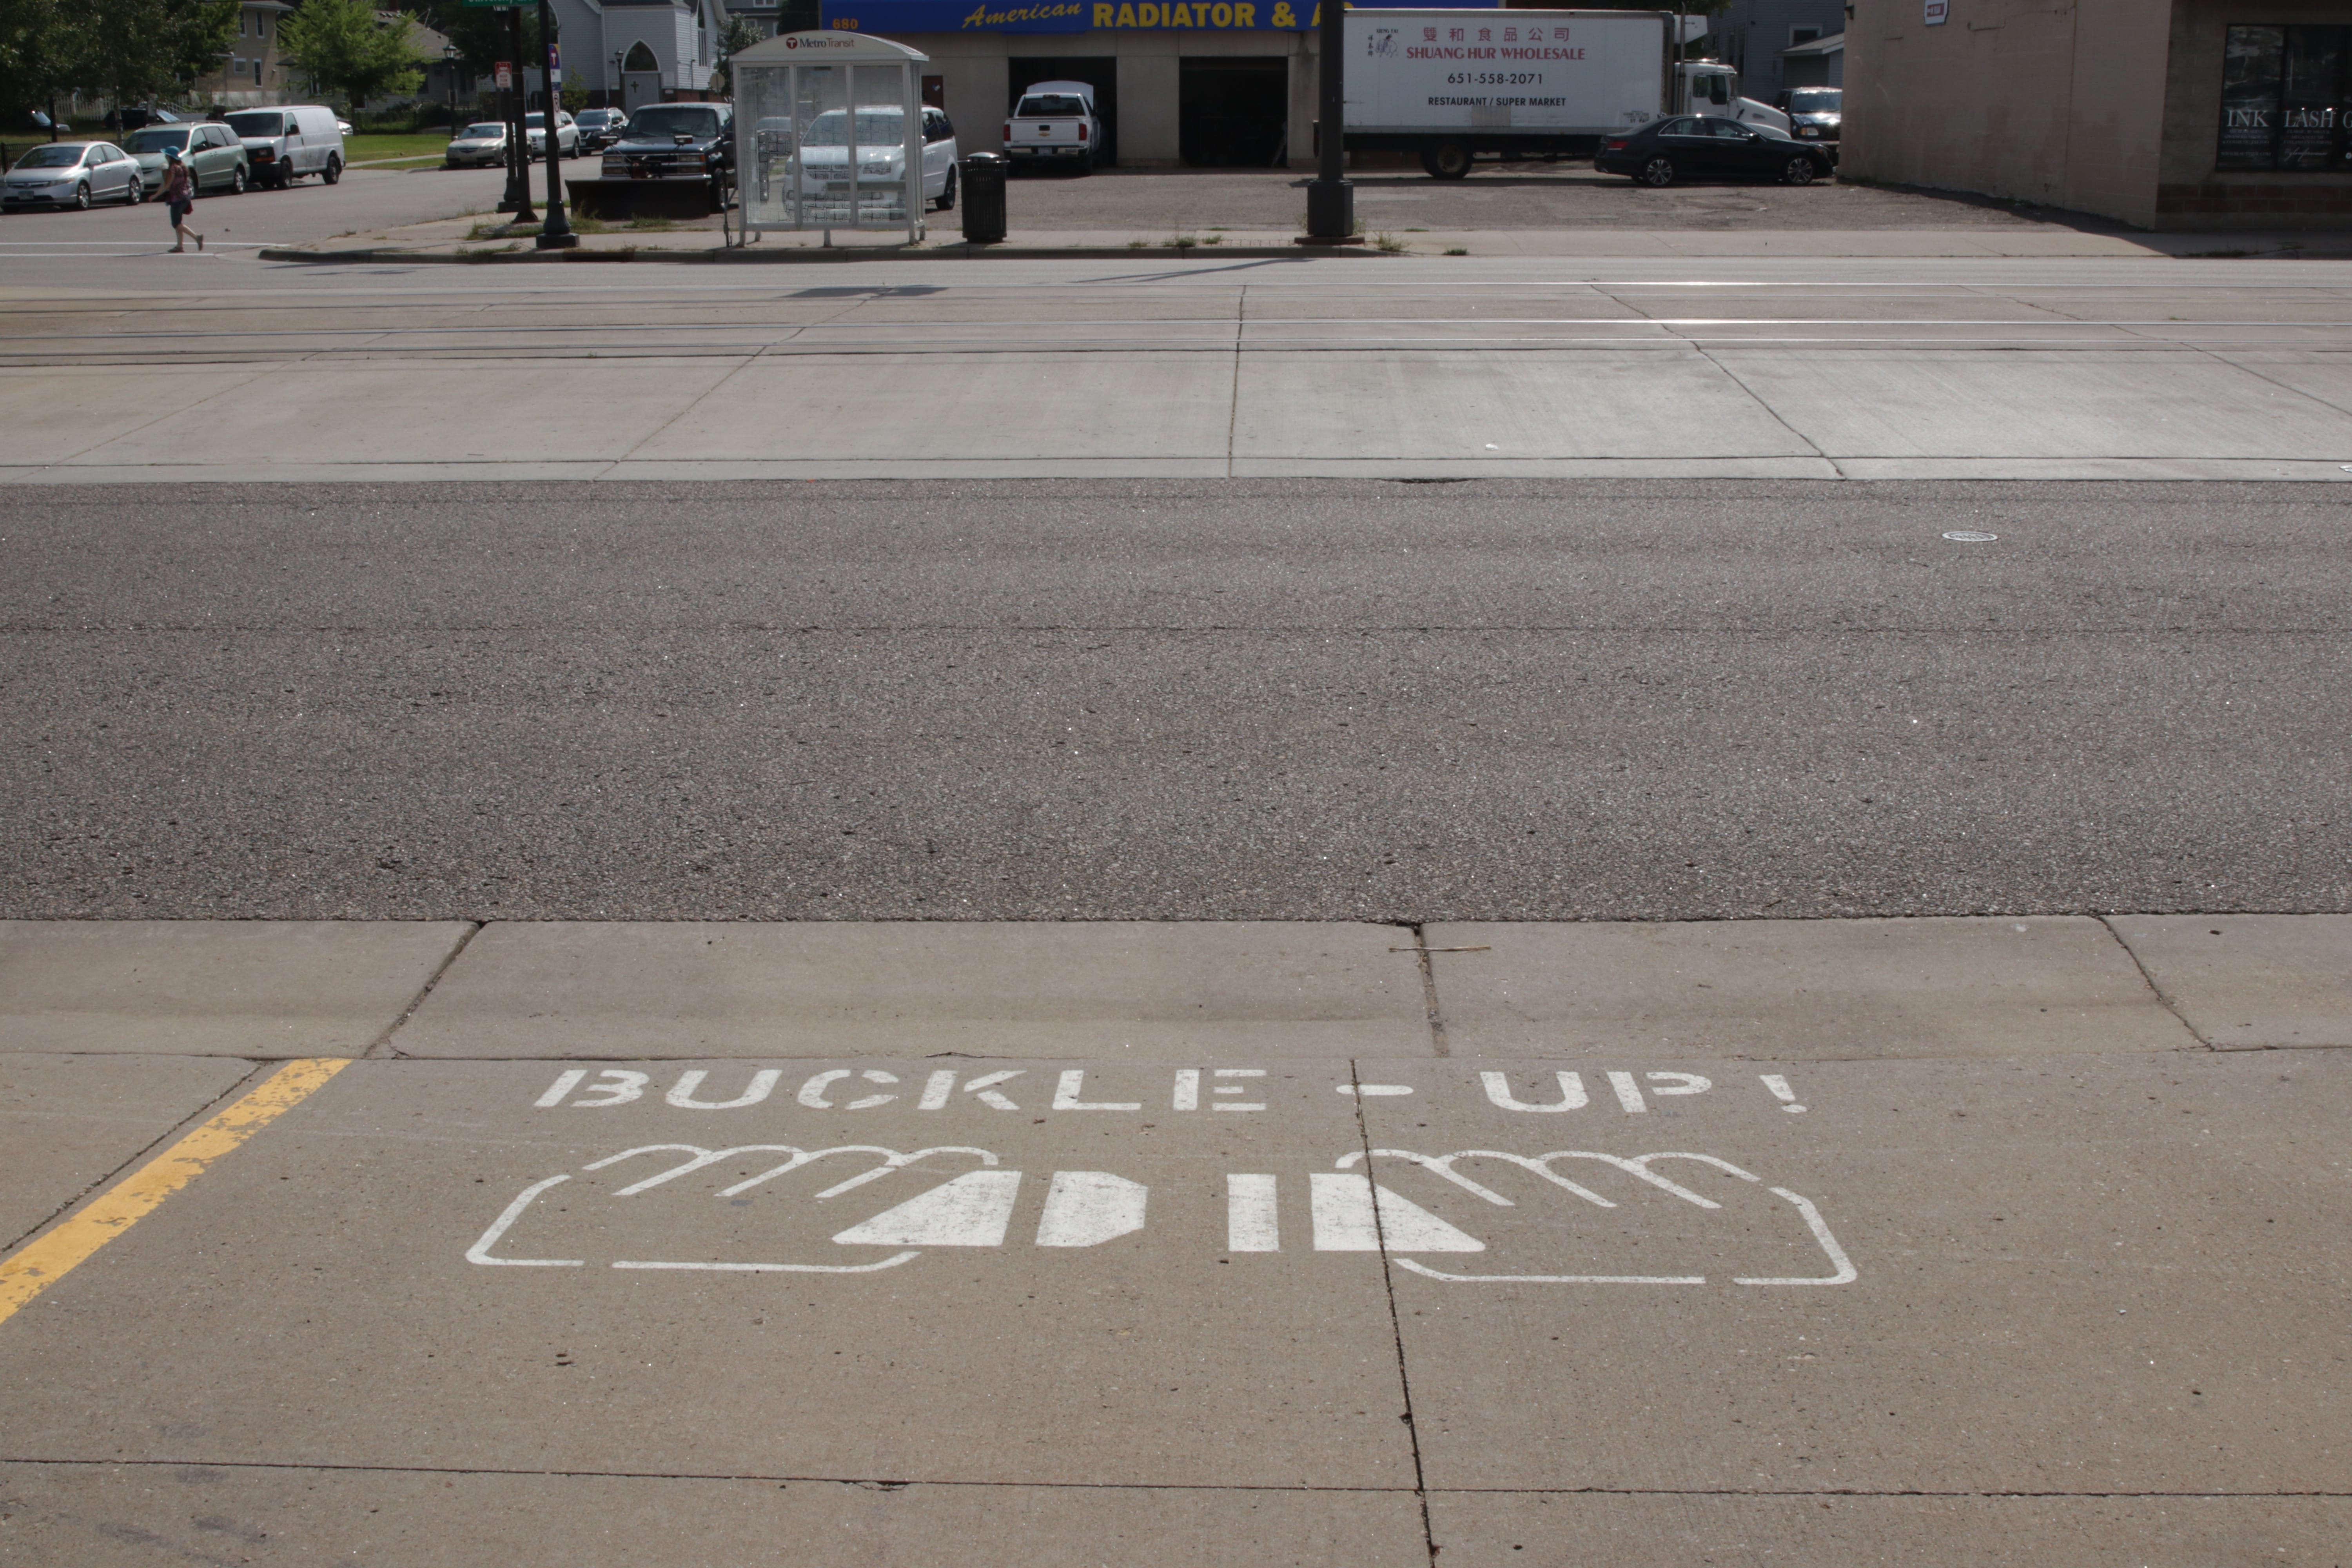 A simple and important reminder painted upon the driveway of Station 18.